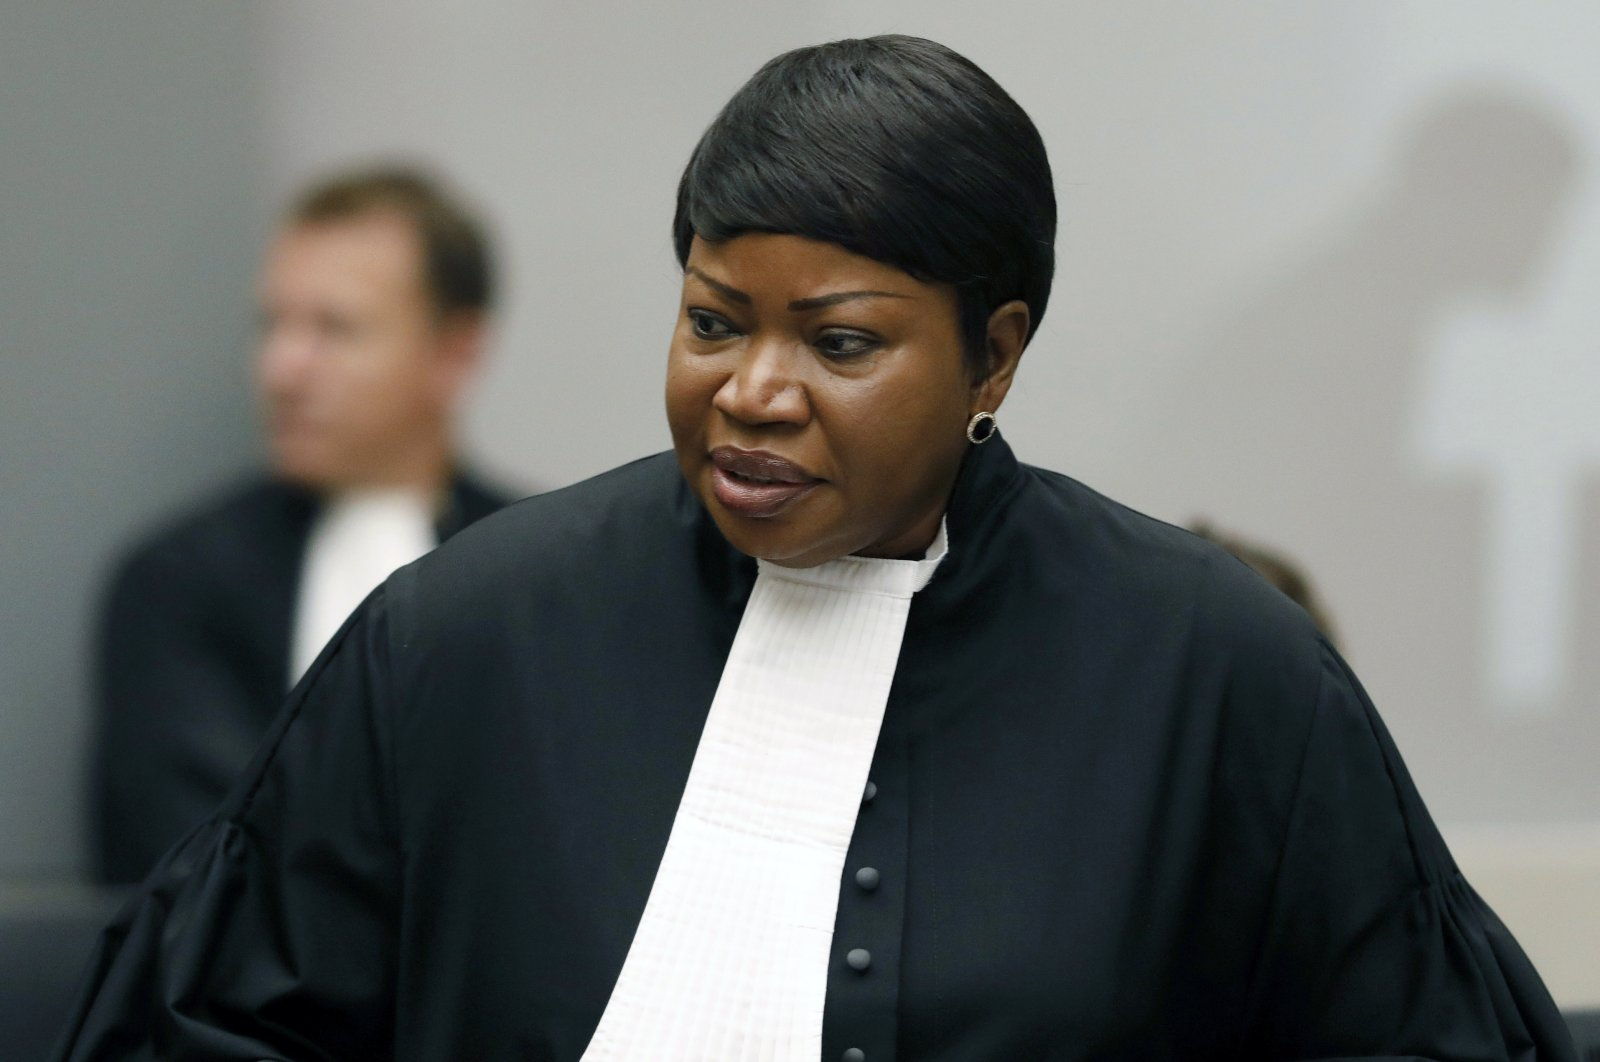 Prosecutor Fatou Bensouda at the International Criminal Court (ICC) in The Hague, the Netherlands, Aug. 28, 2018. (AP Photo)